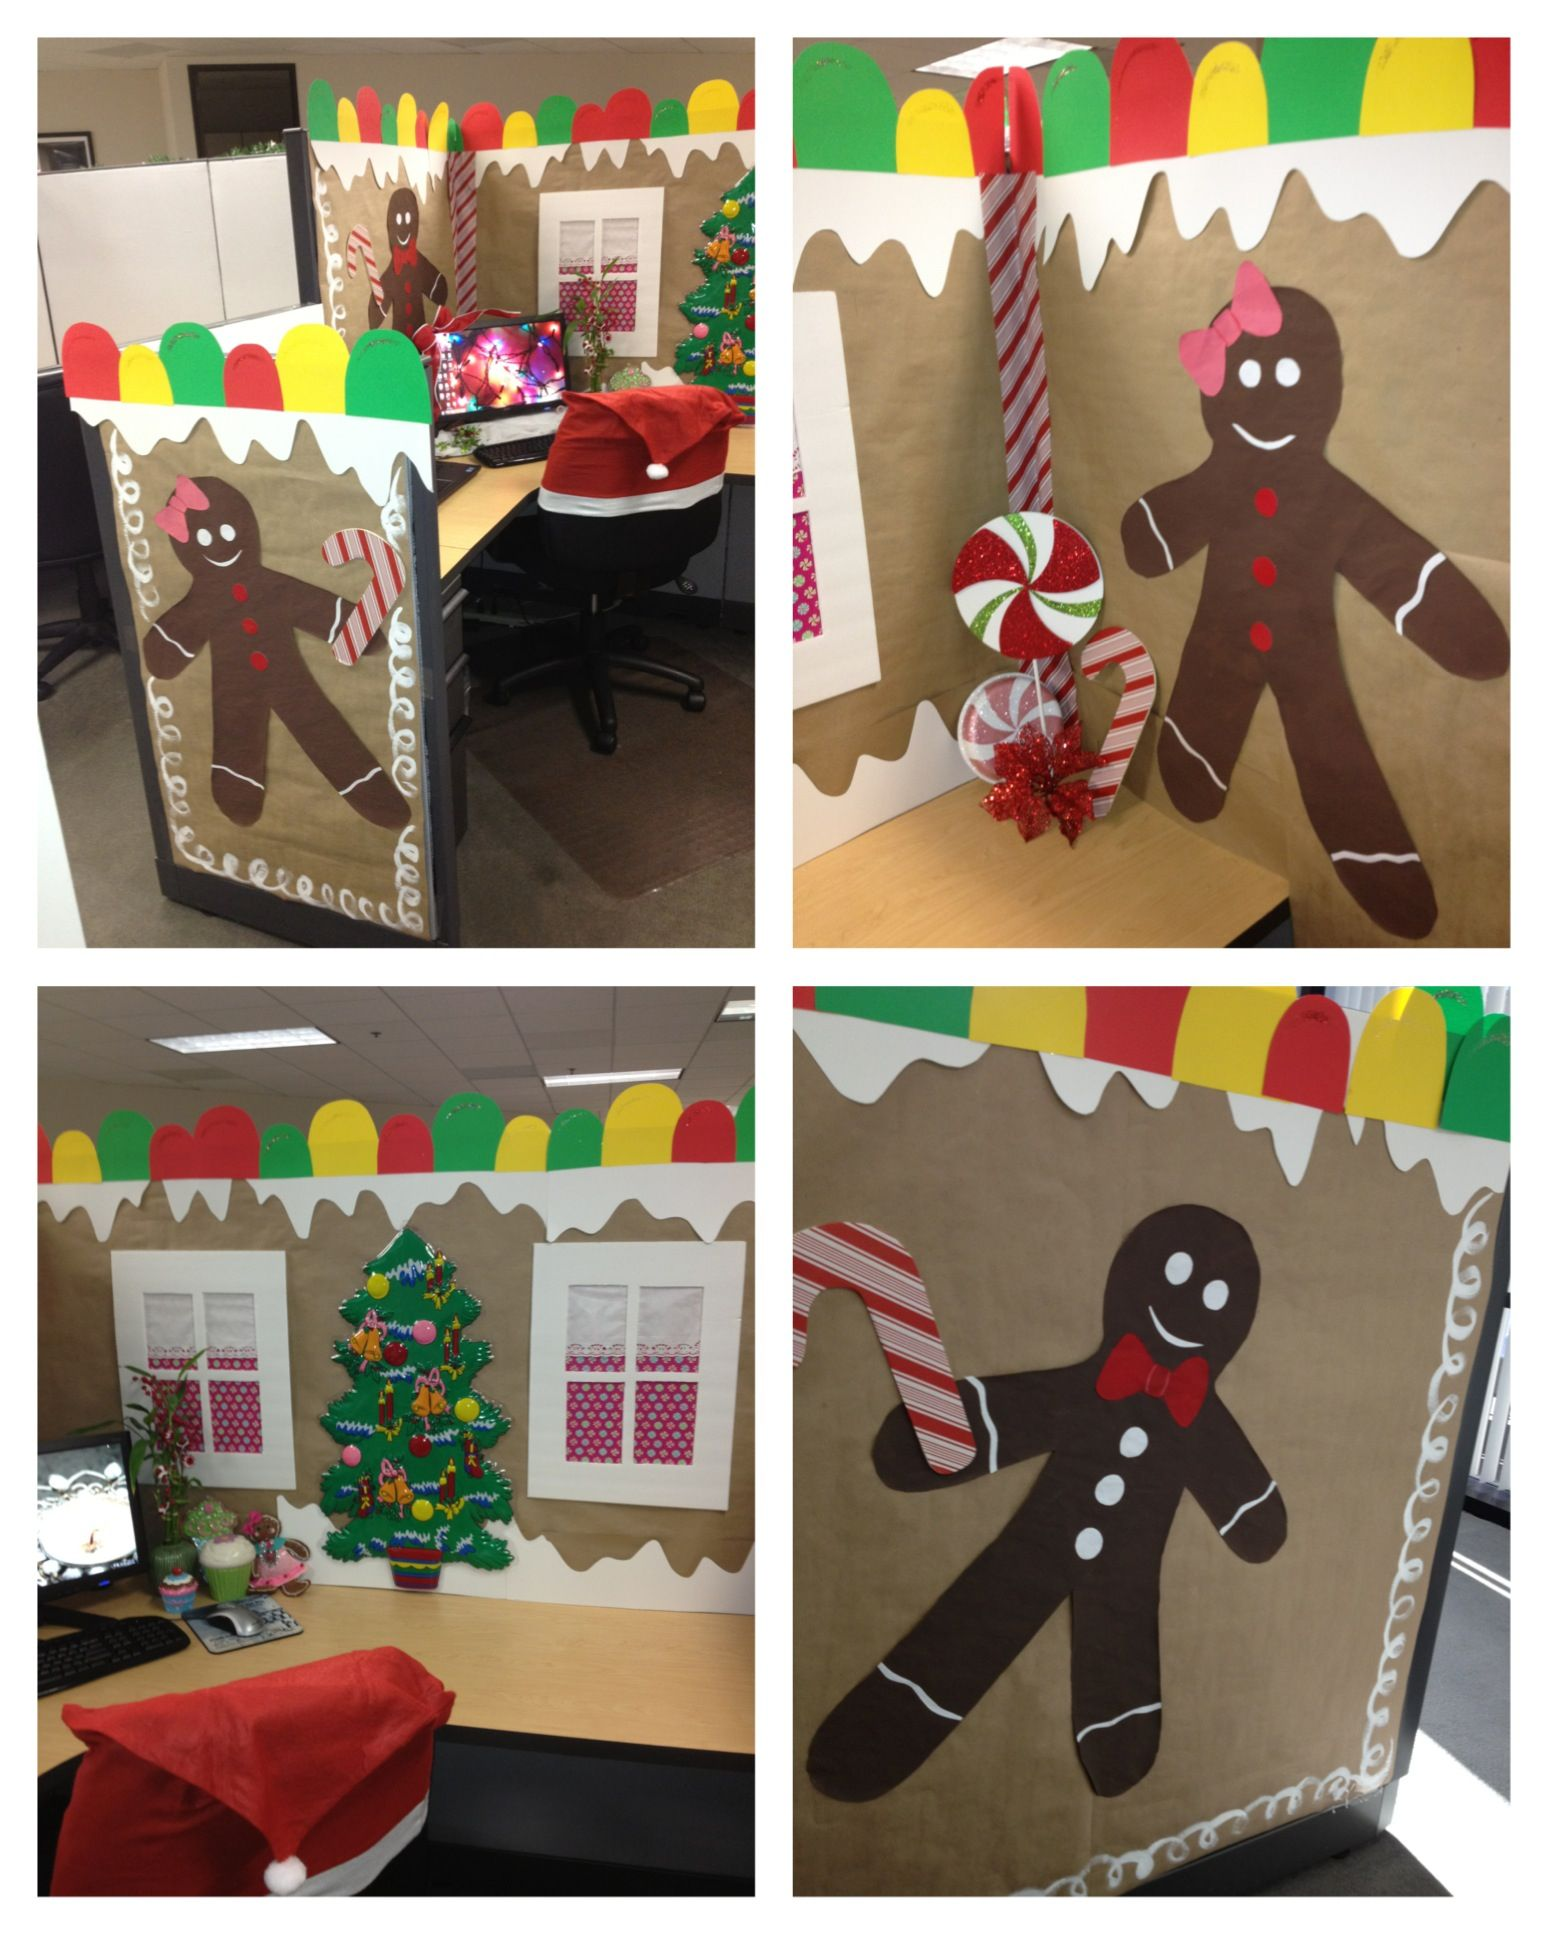 Christmas Cubicle Decorations - I am so glad I work from home fun - Cubicle Halloween Decorations